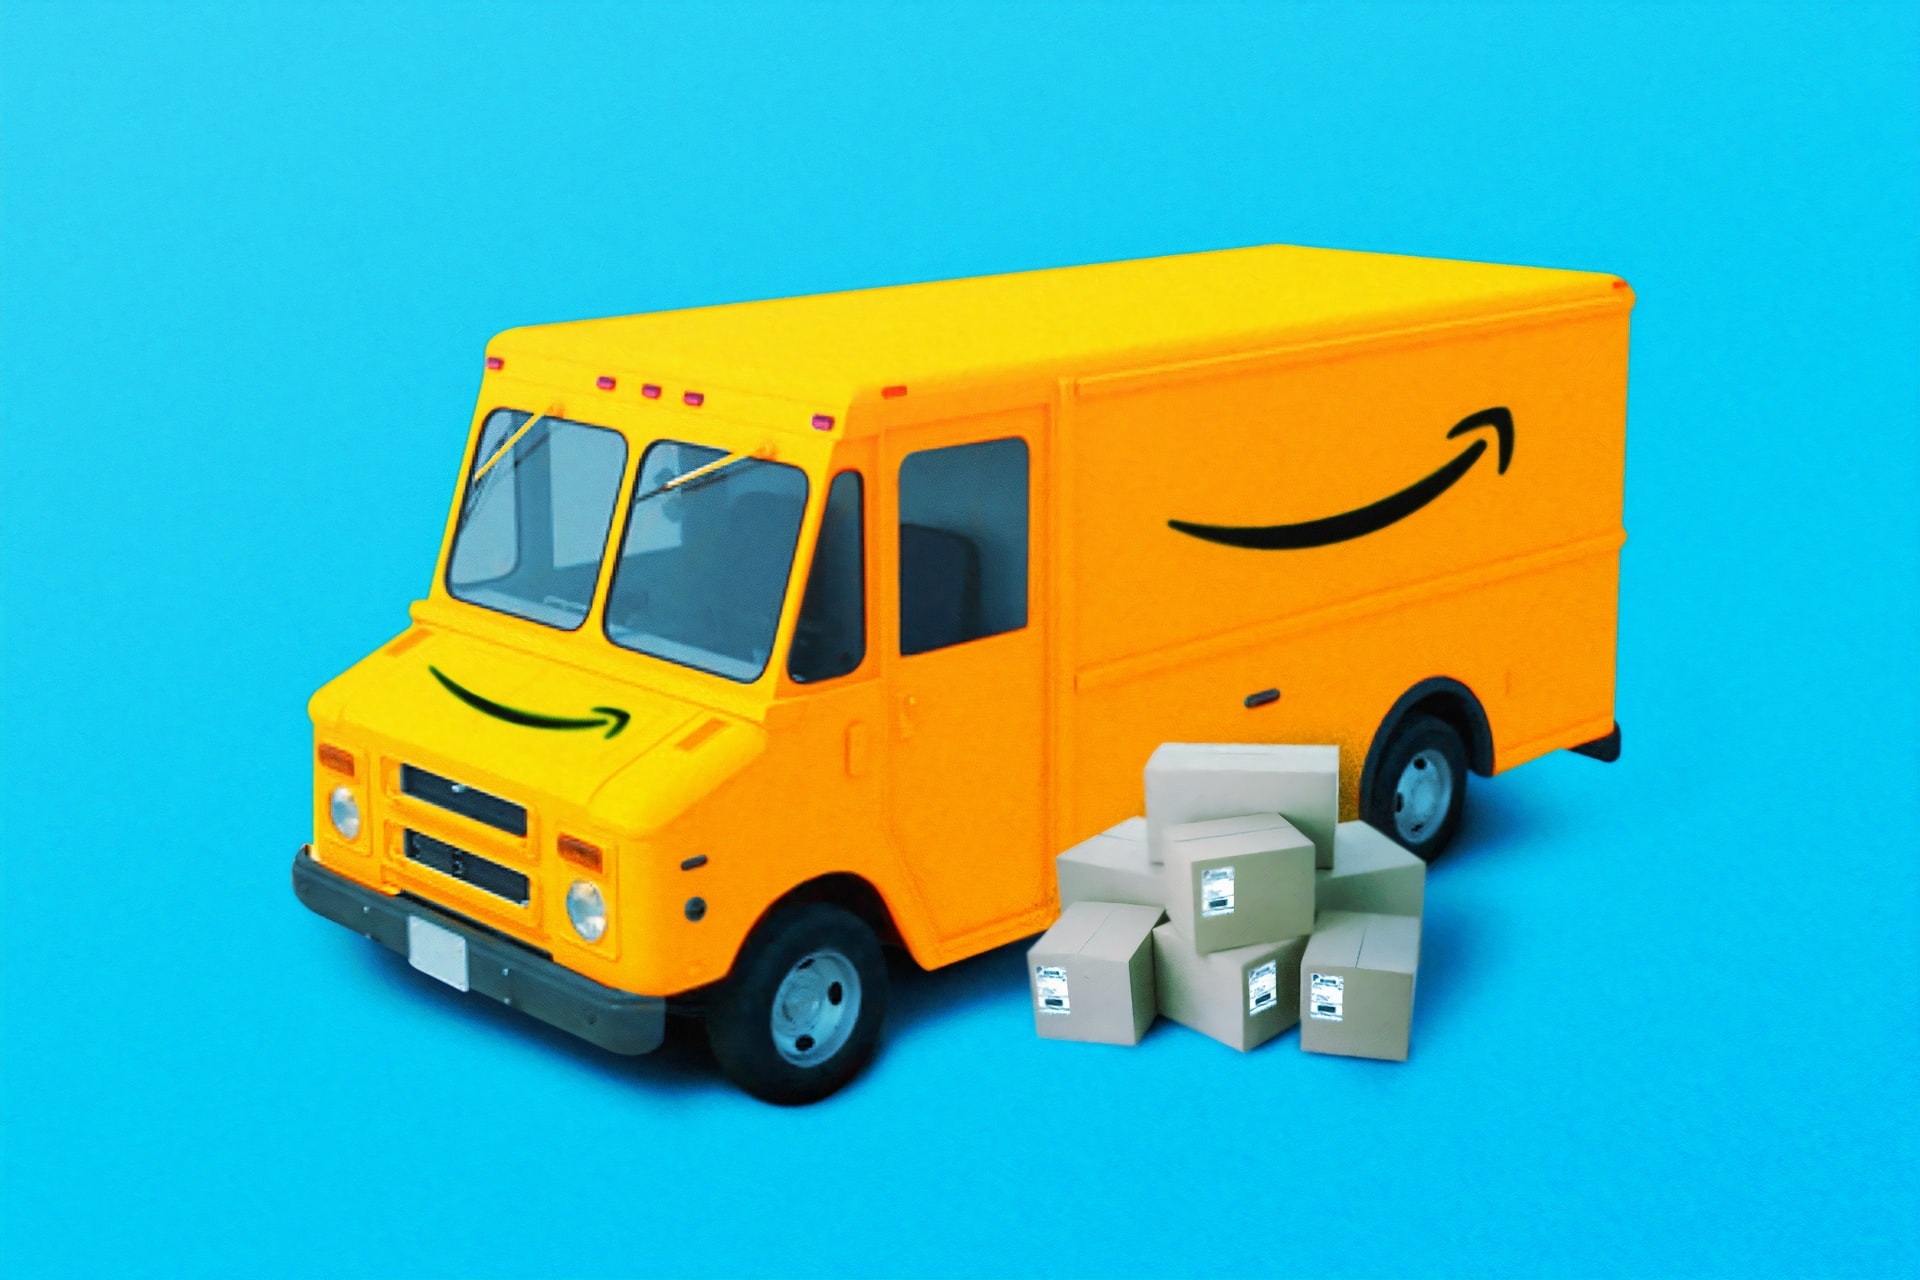 Who Do You Sue if You Get into an Accident with an Amazon Delivery Truck in Texas?